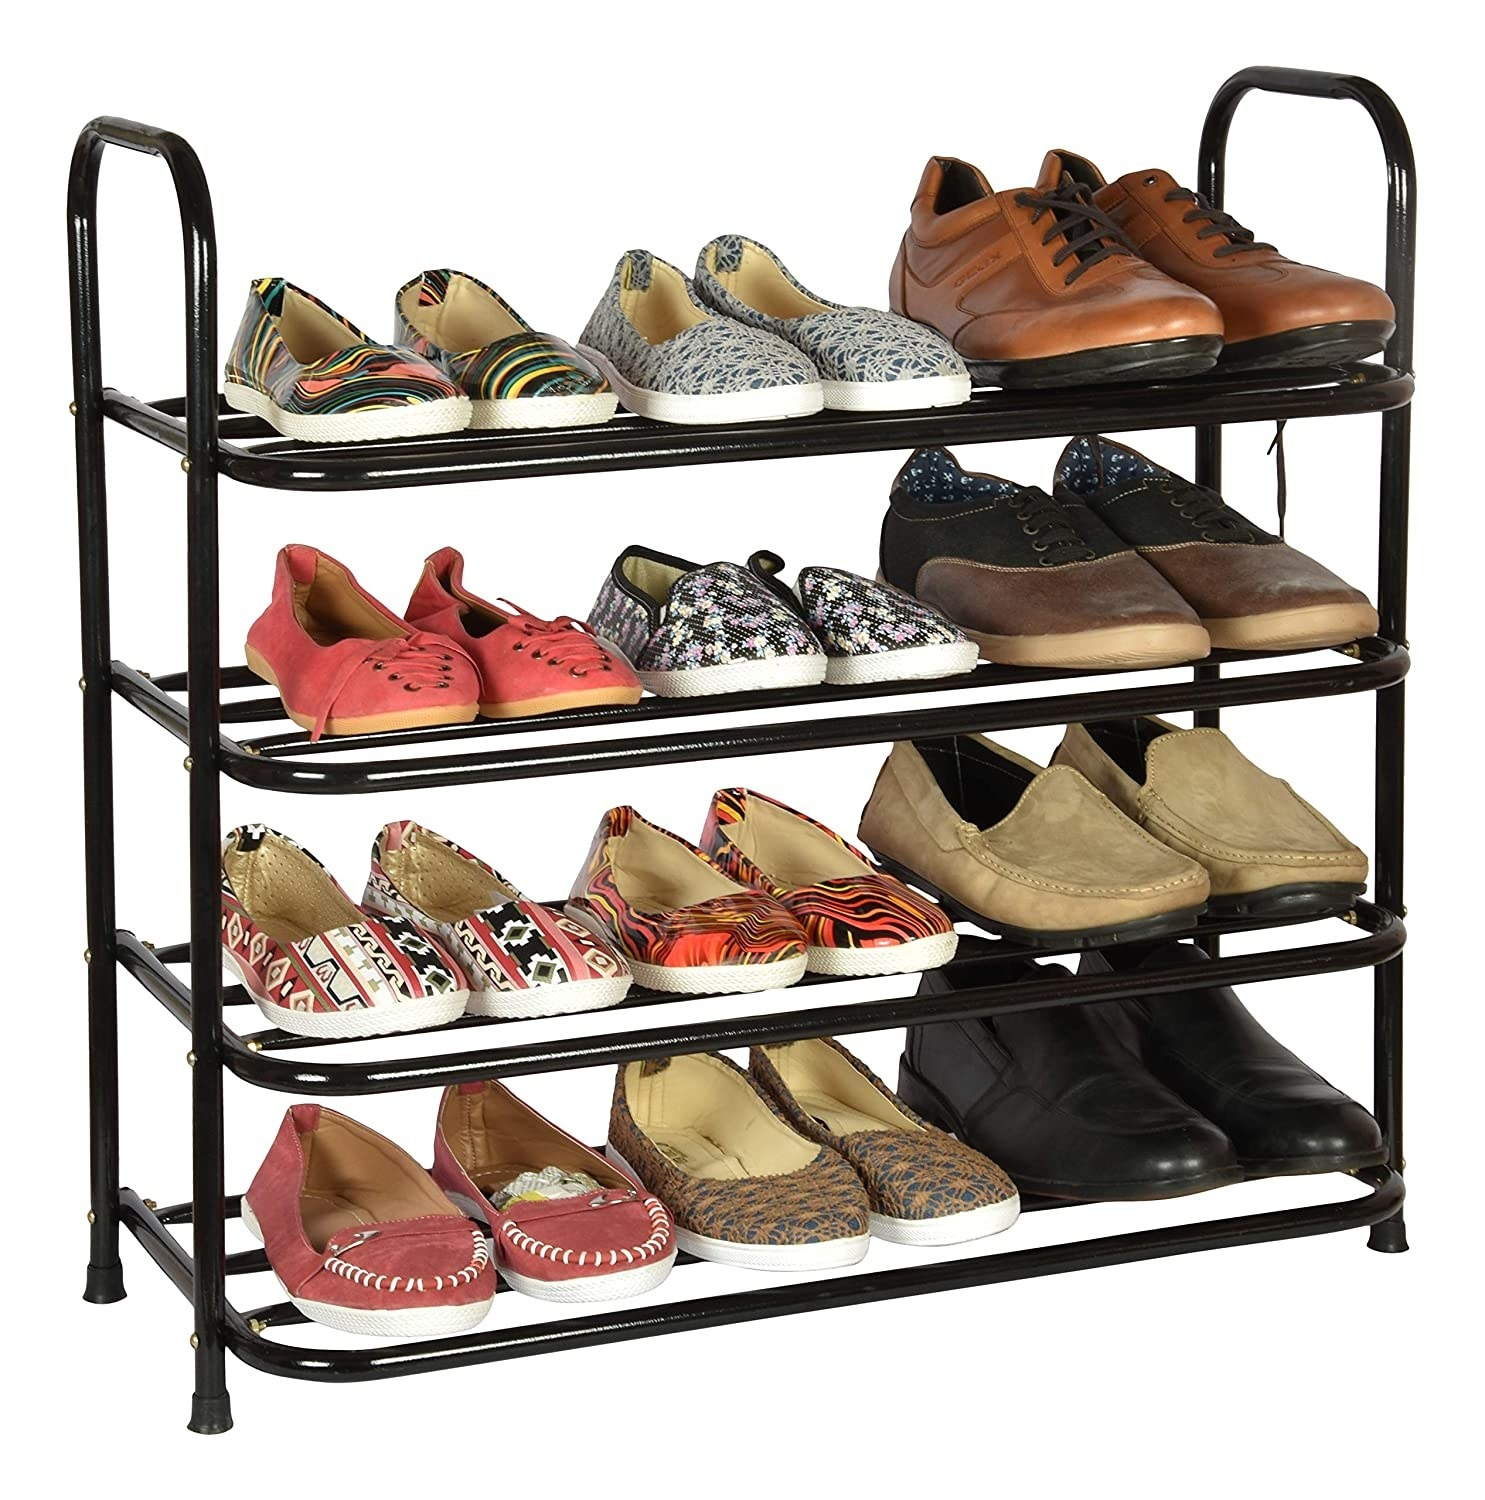 A shoe rack with shoes in it